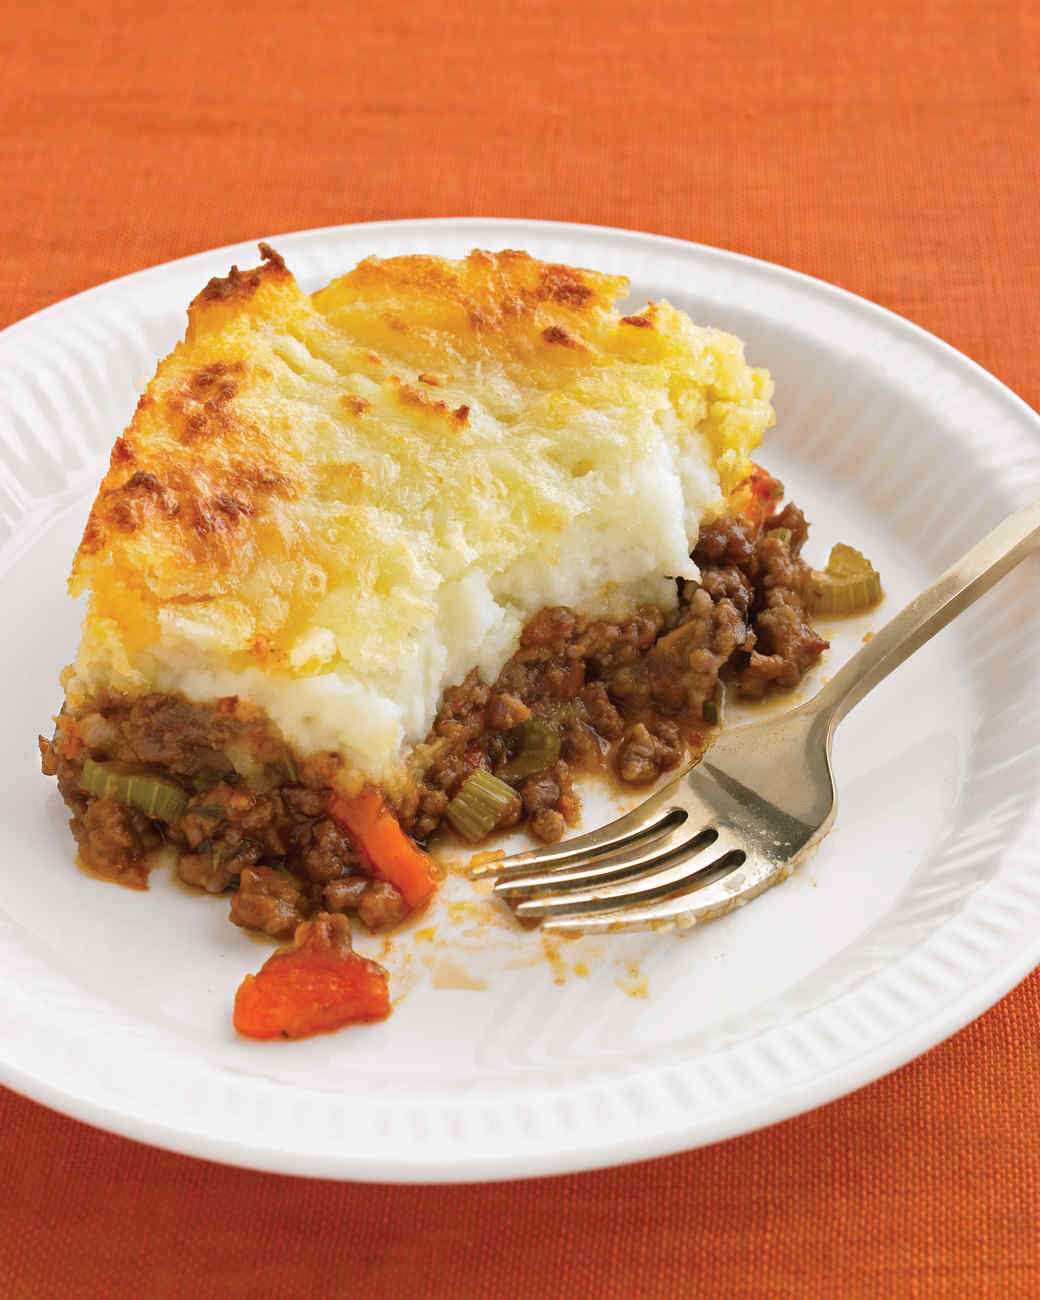 Cheddar-Topped Shepherd's Pie Recipe & Video | Martha Stewart